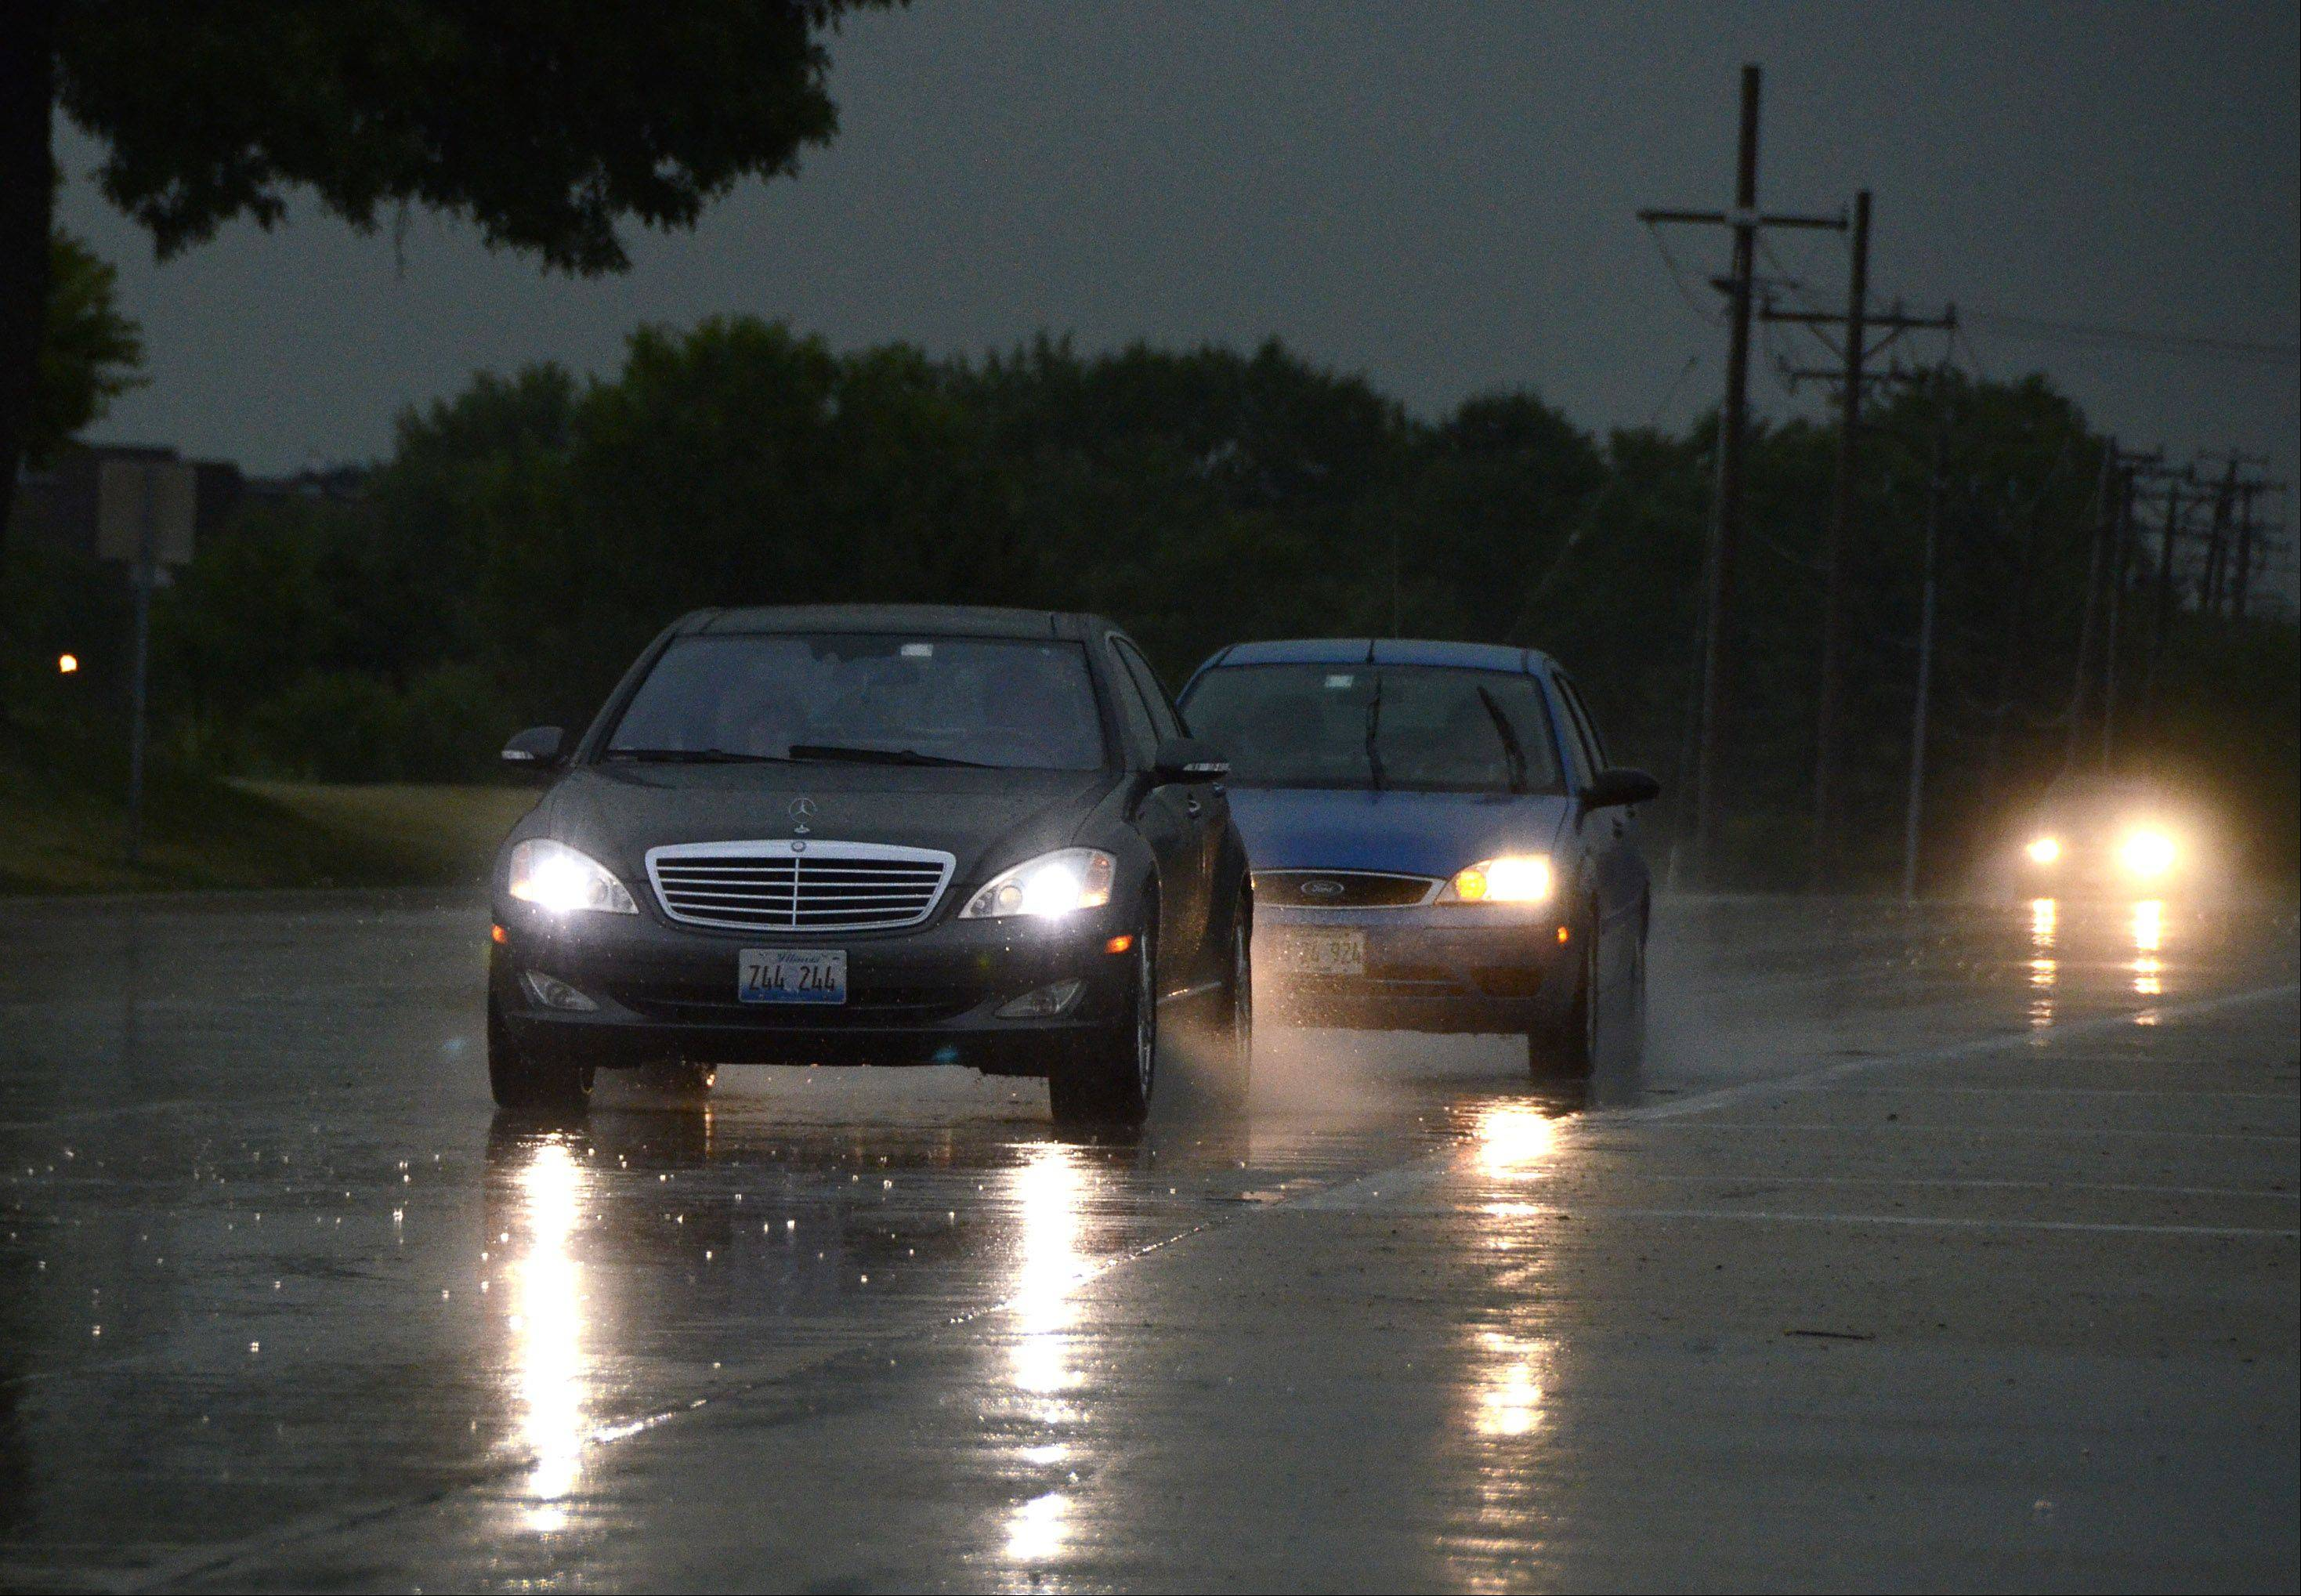 Day turns to night as rain finally comes to the area Friday morning as motorists make their way down Algonquin Road near Harper College.